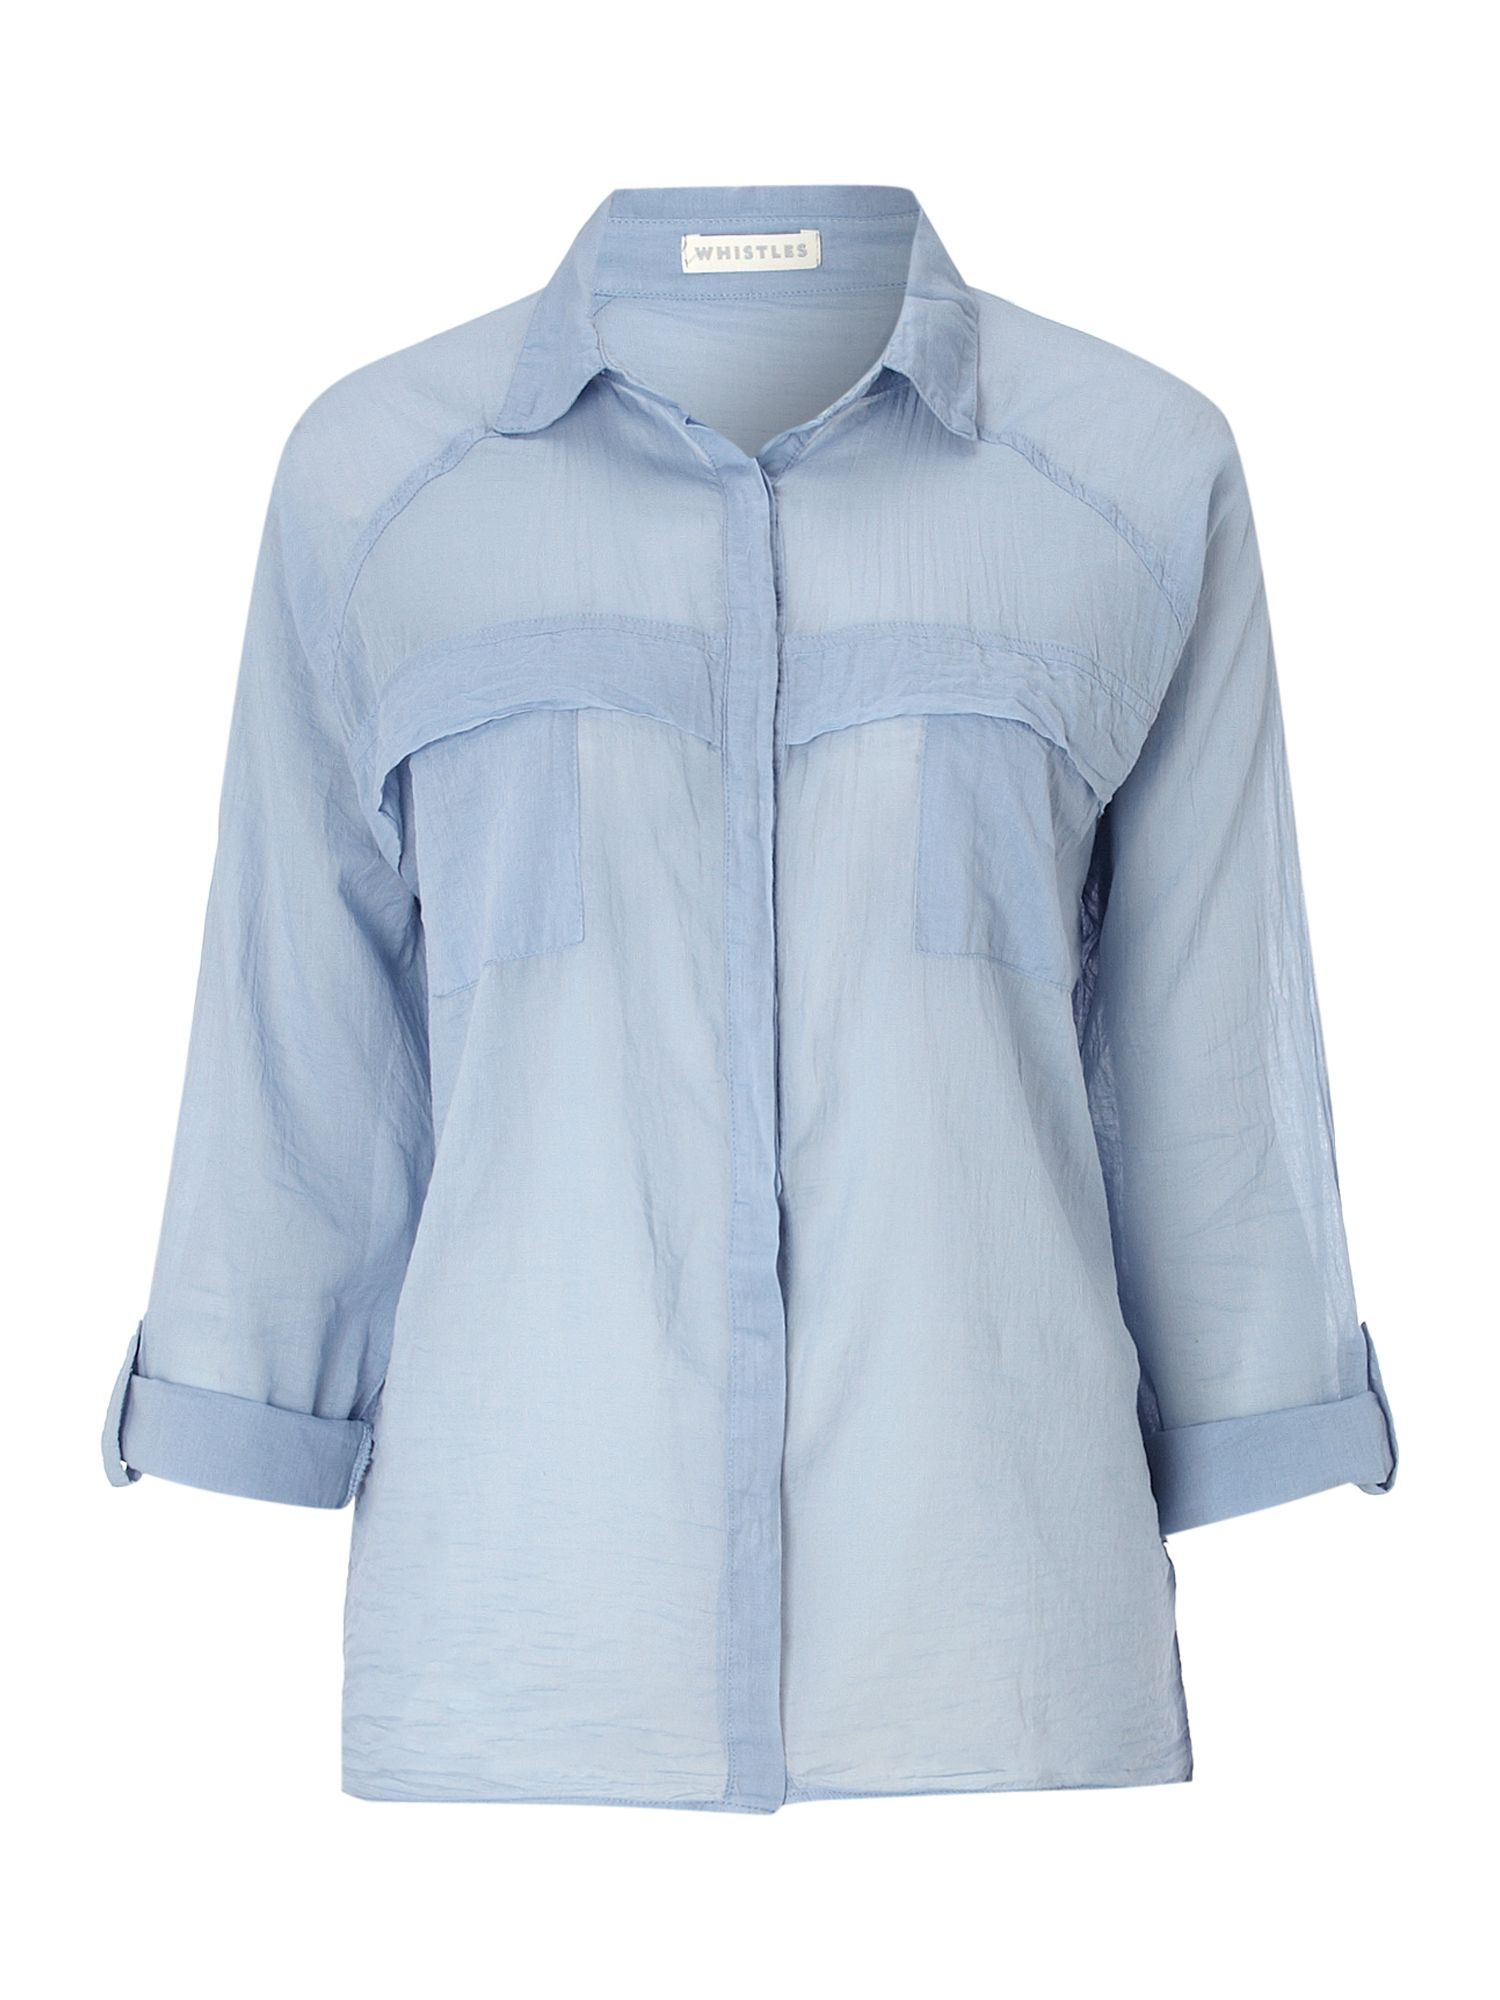 Whistles nick soft cotton shirt in blue light blue lyst for Soft cotton dress shirts